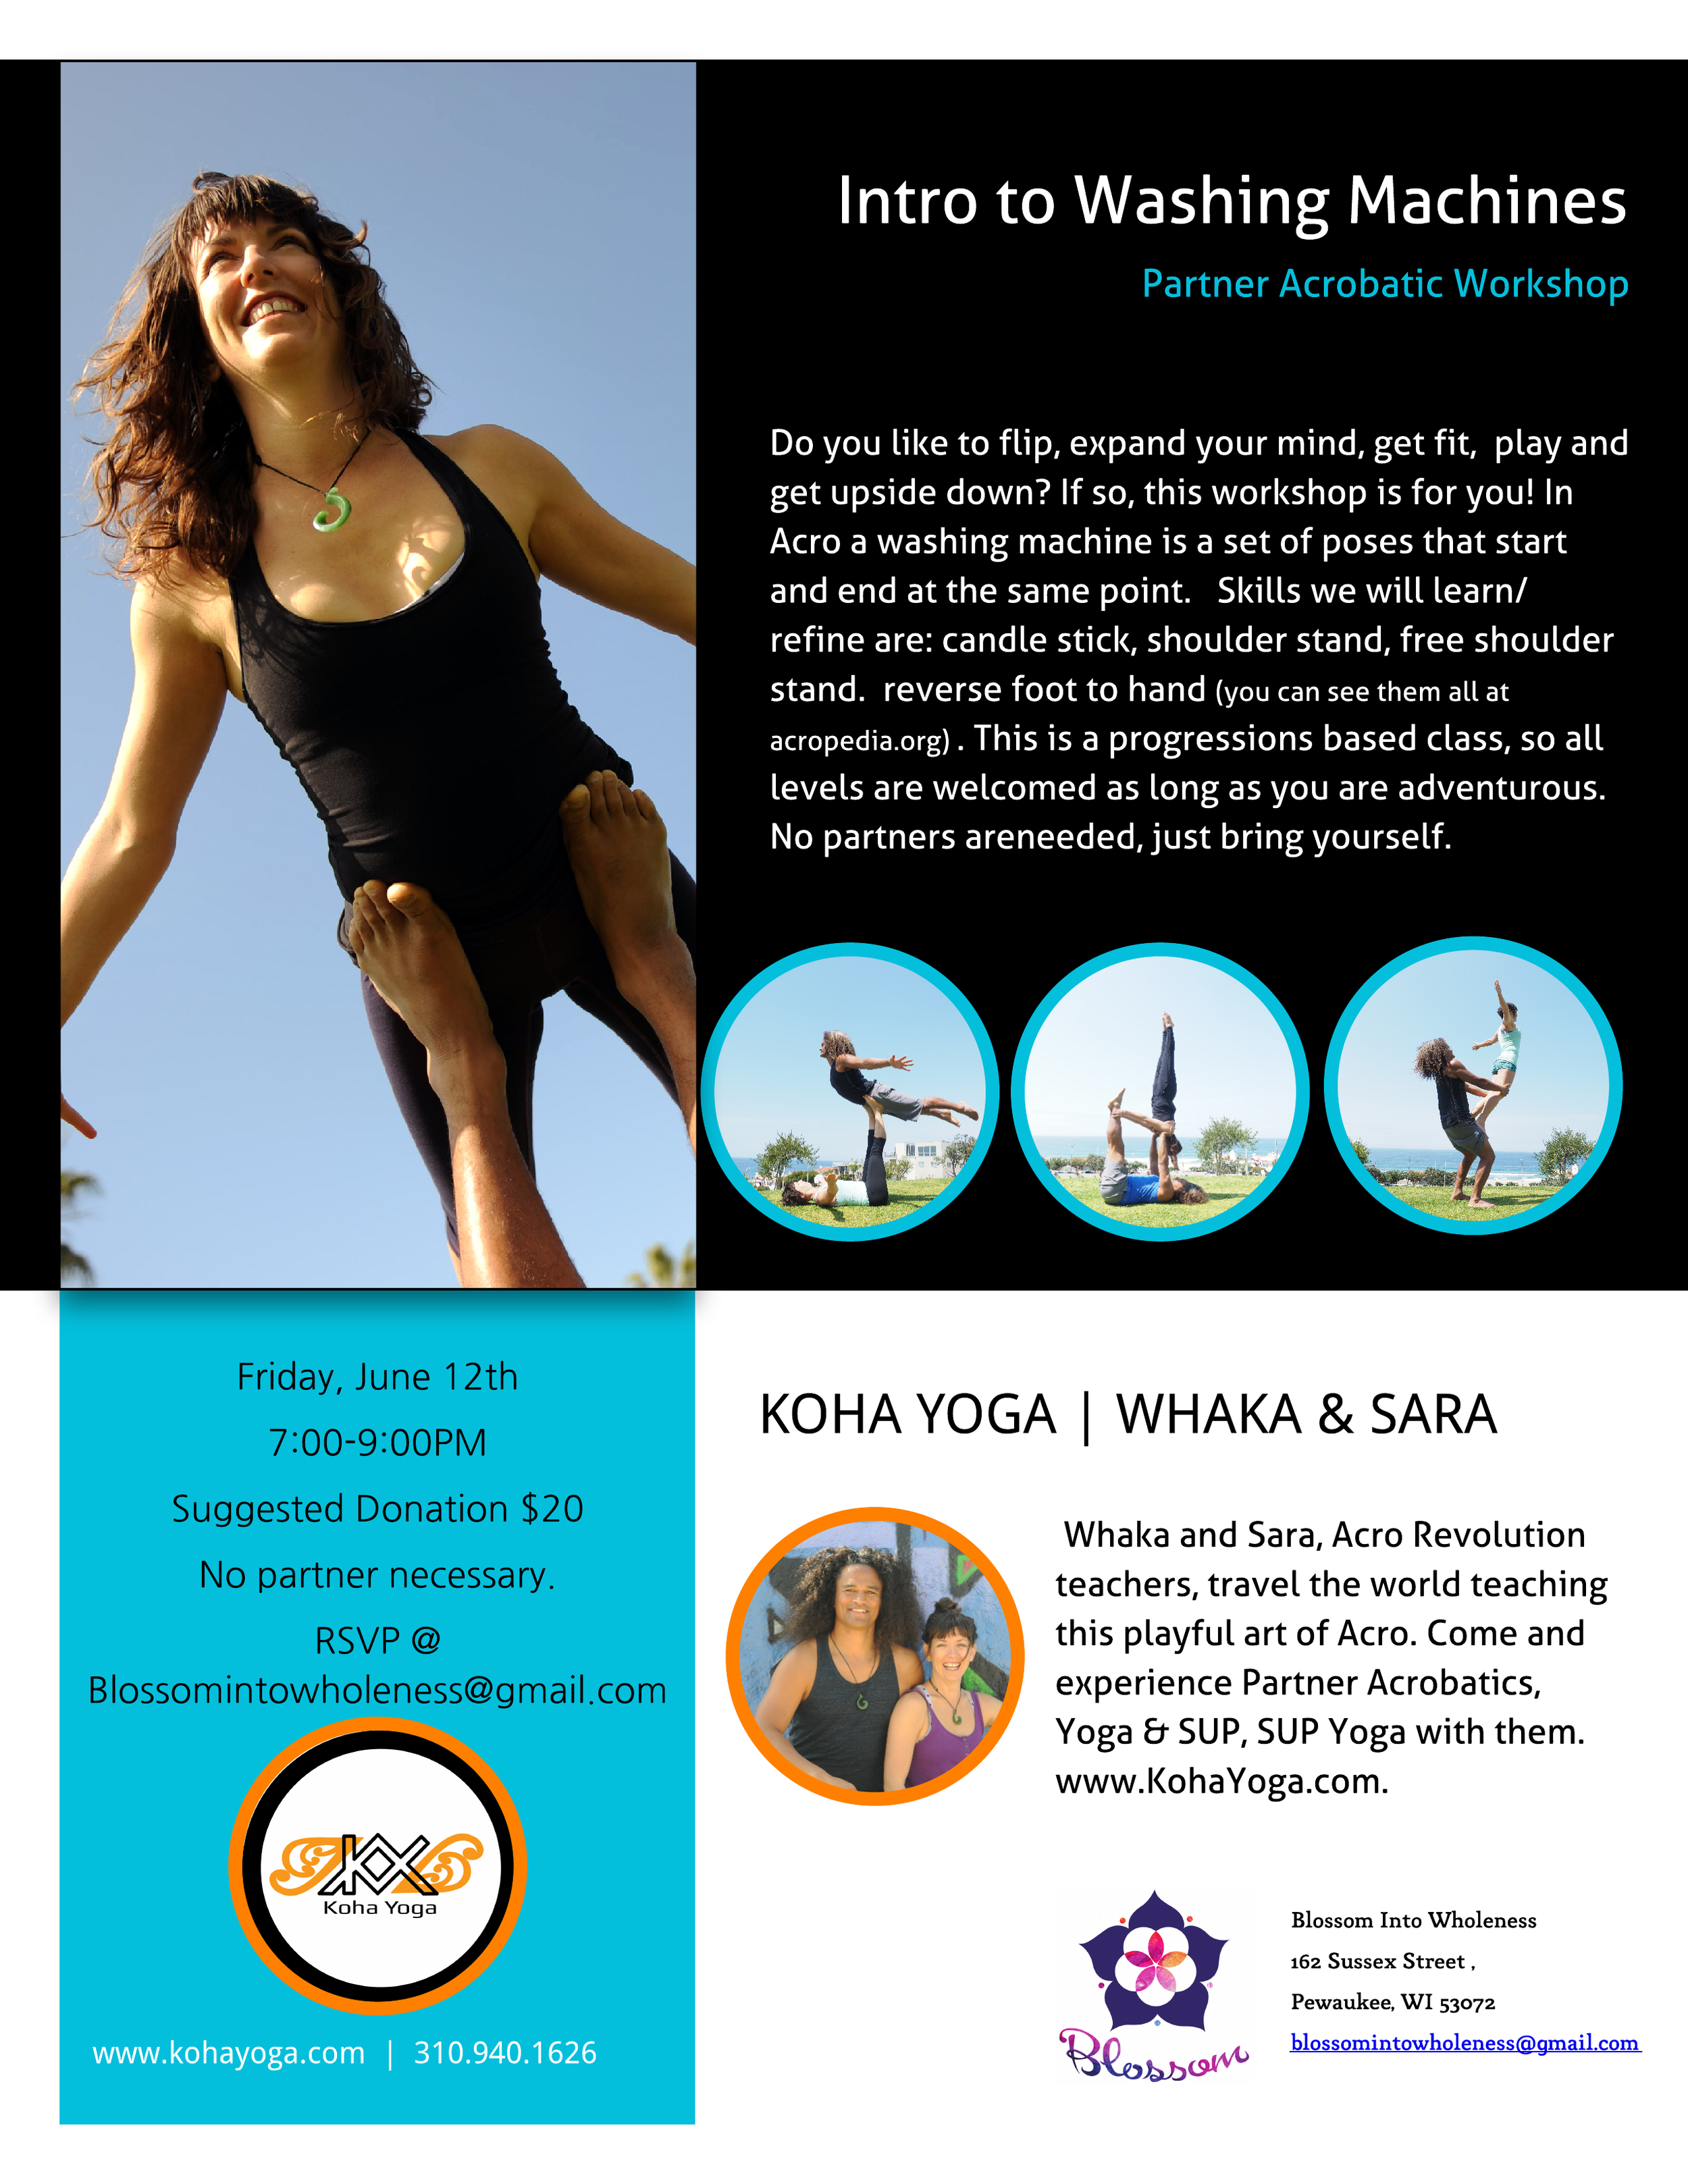 acro_yoga_revolution_workshop